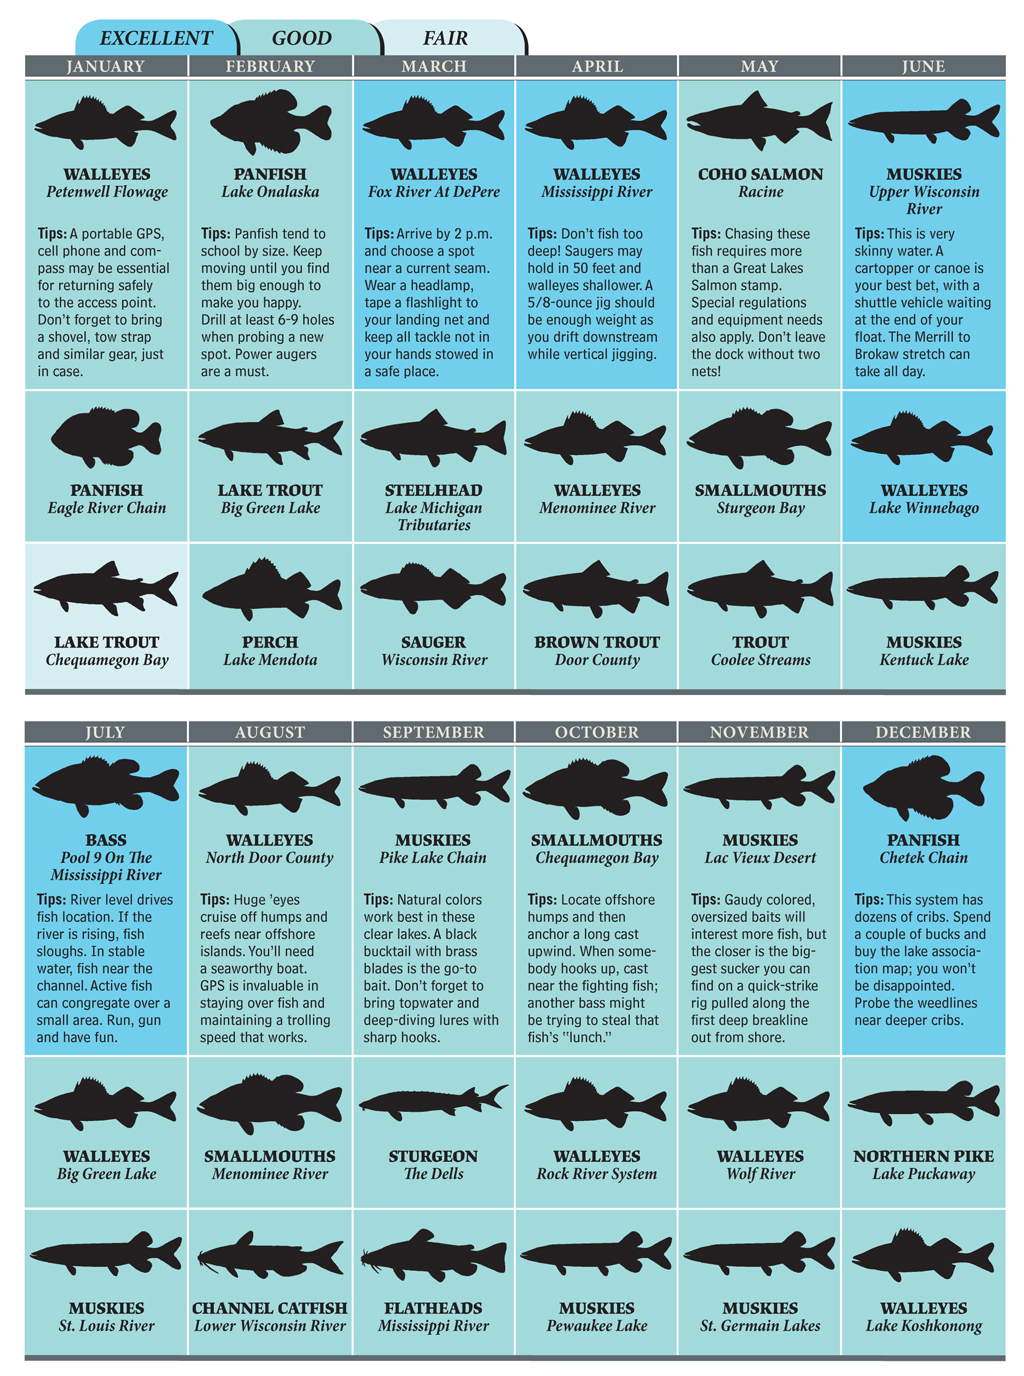 Best bets for wisconsin fishing in 2012 game fish for Fishing in wisconsin